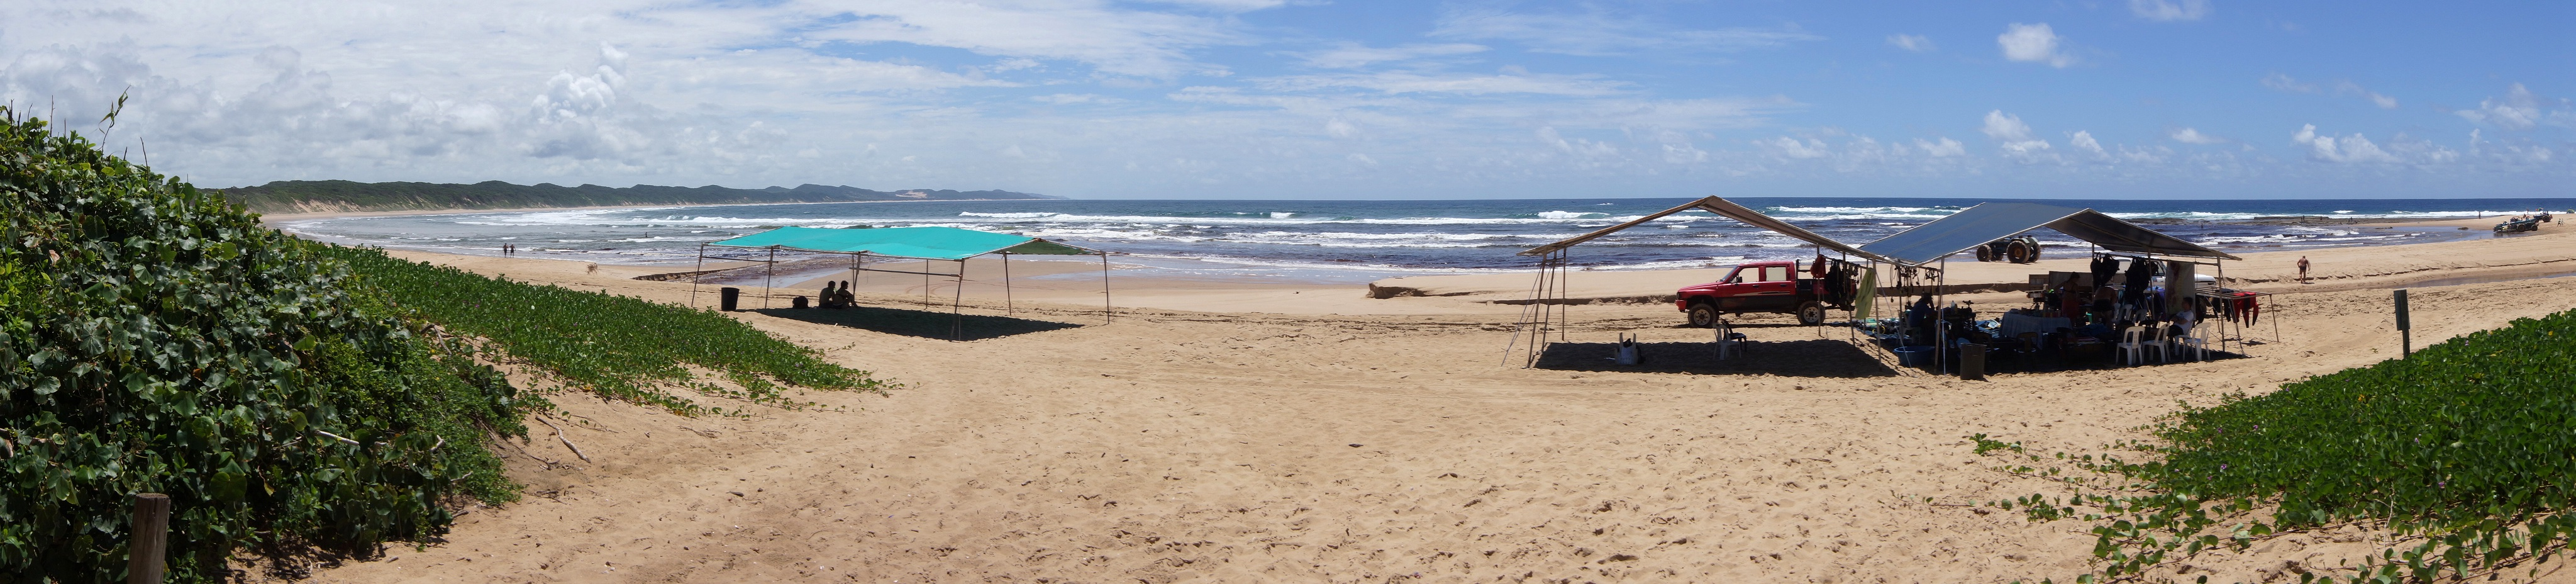 beach in Sodwana Bay